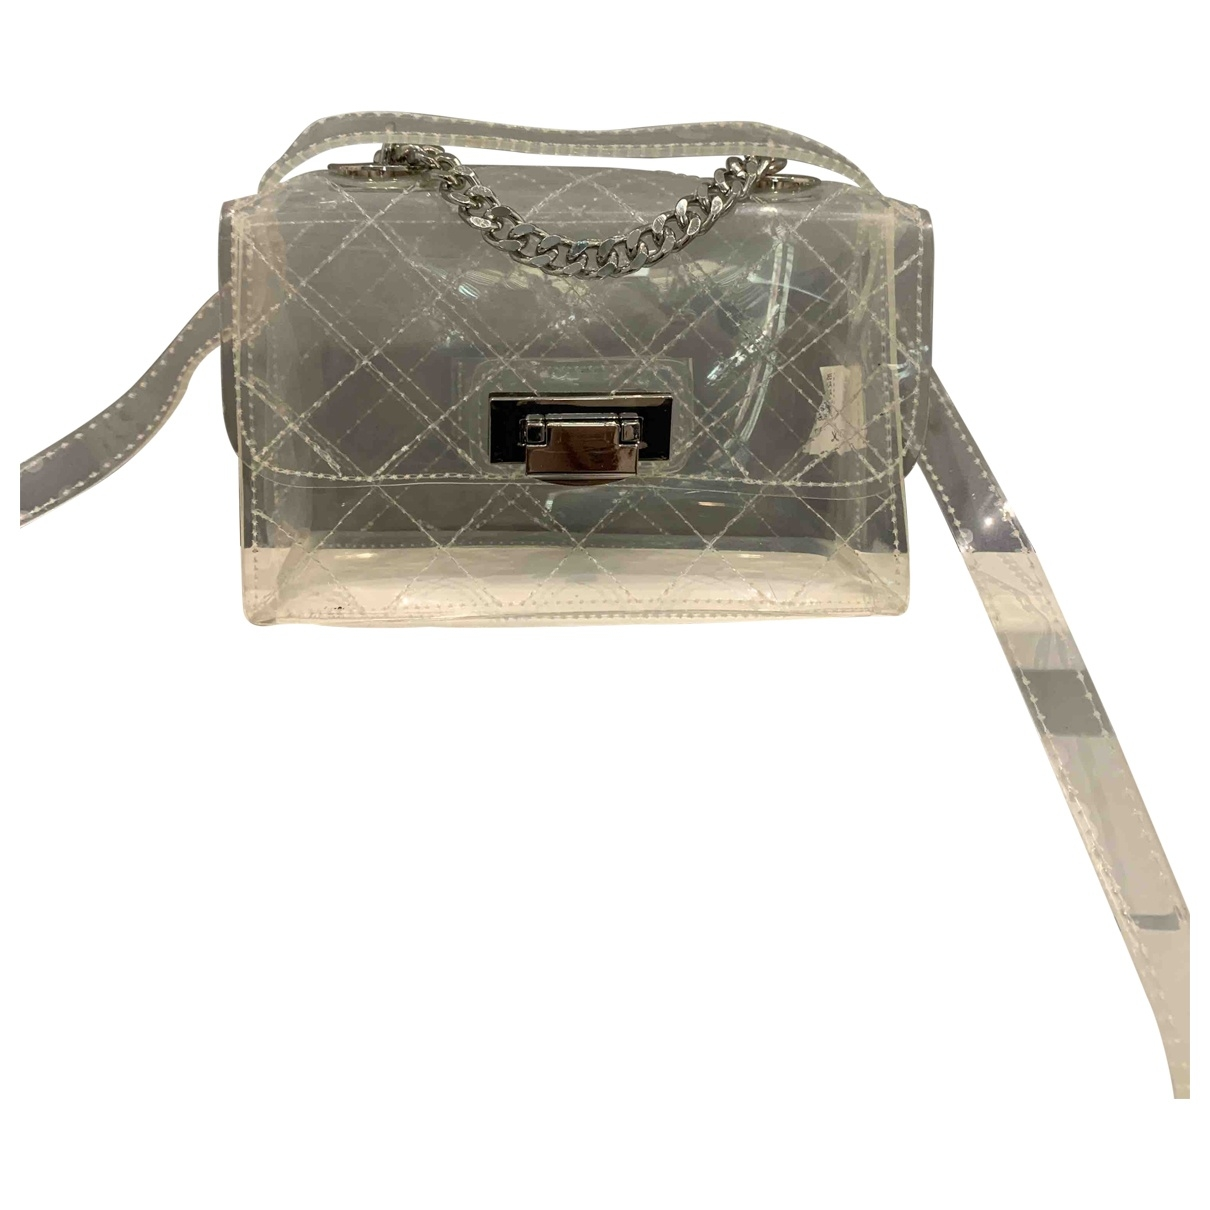 Zara \N Silver handbag for Women \N